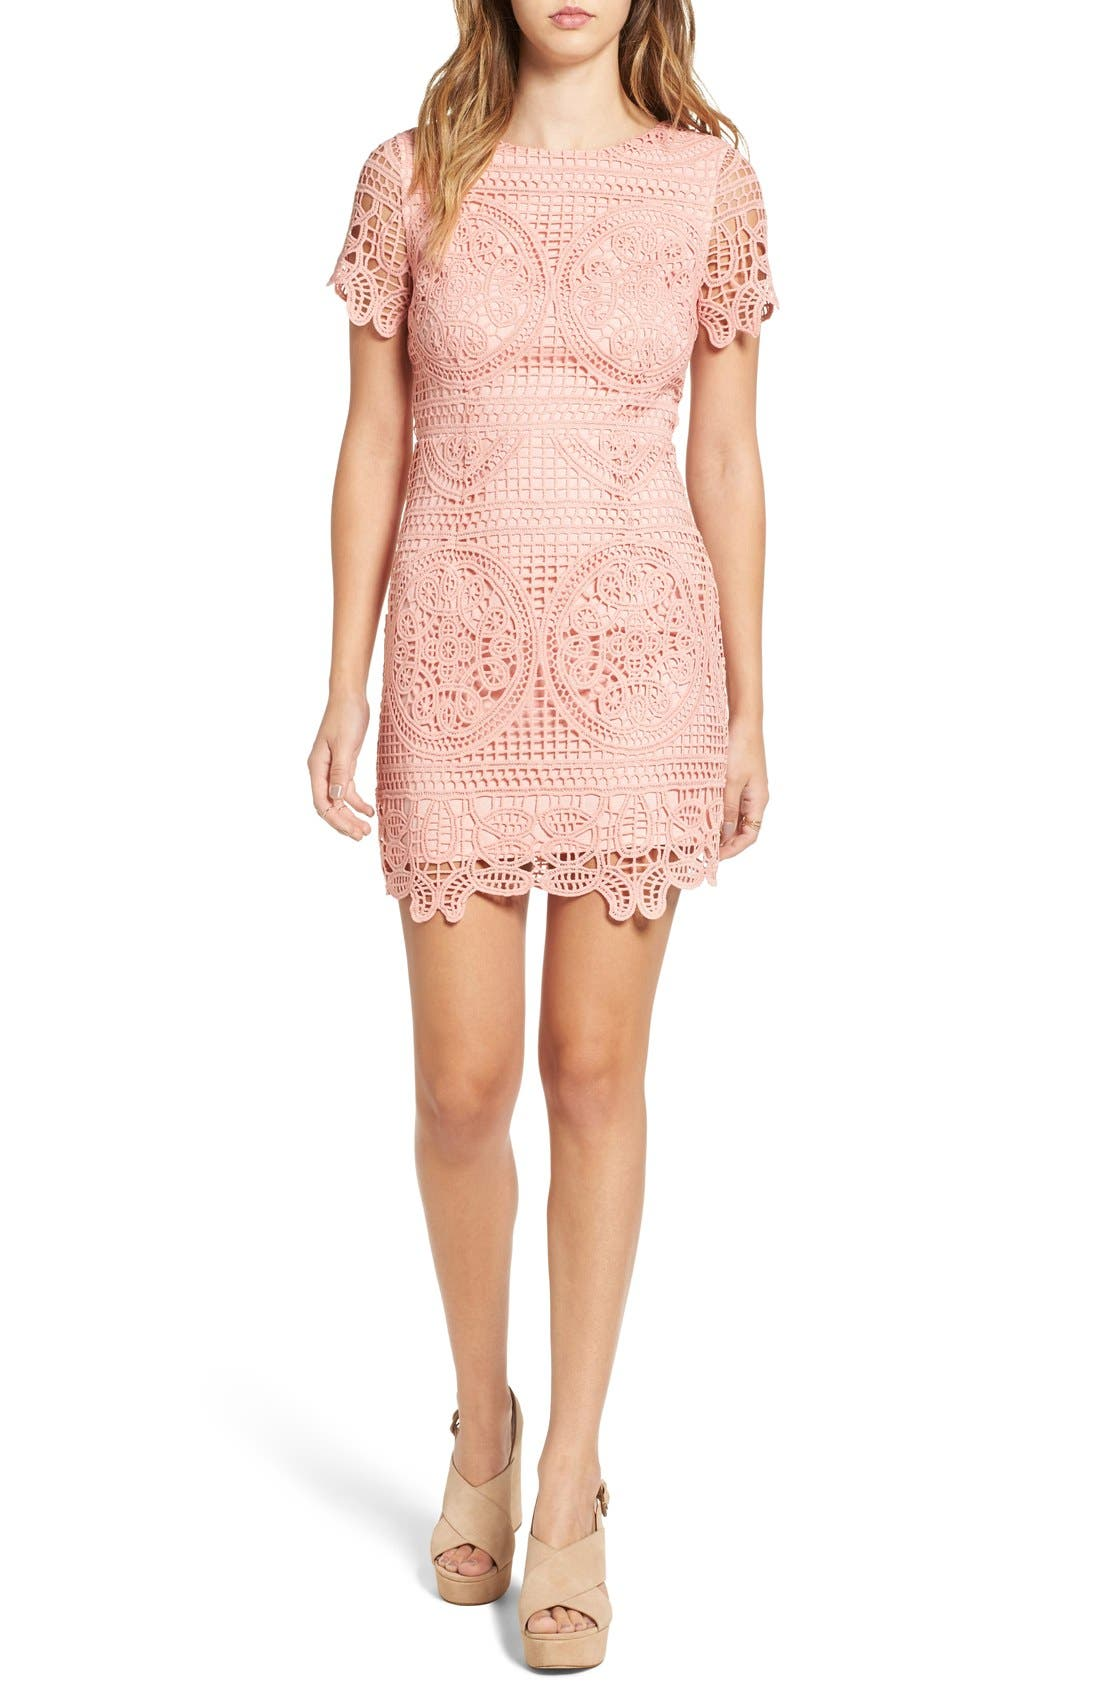 Main Image - J.O.A. Crochet Lace Sheath Dress